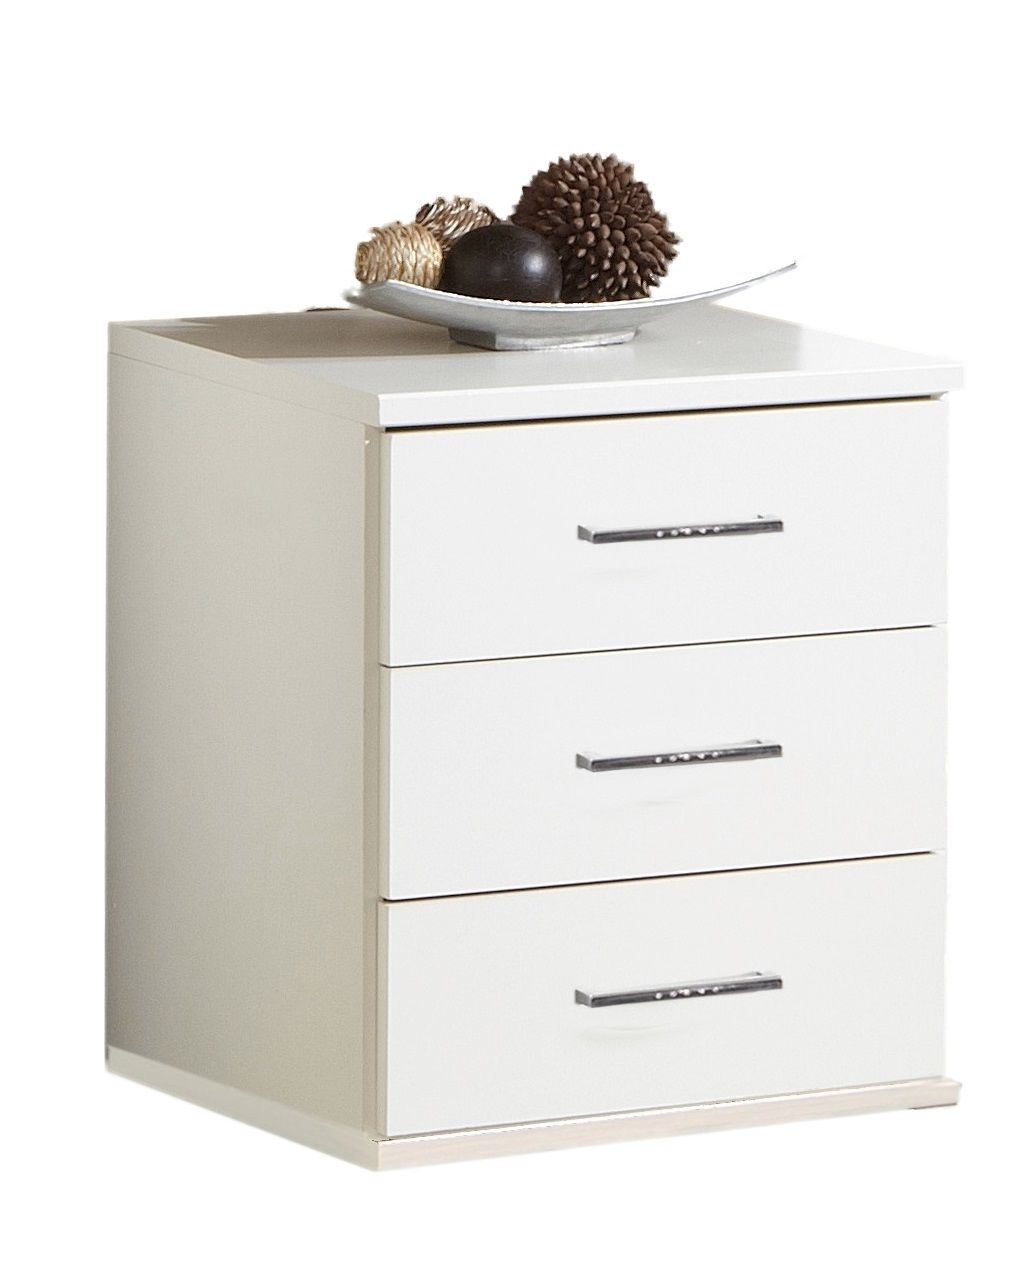 Bijoux German 3 Drawers narrow bedside chest White Crystal Rhinestone Bling